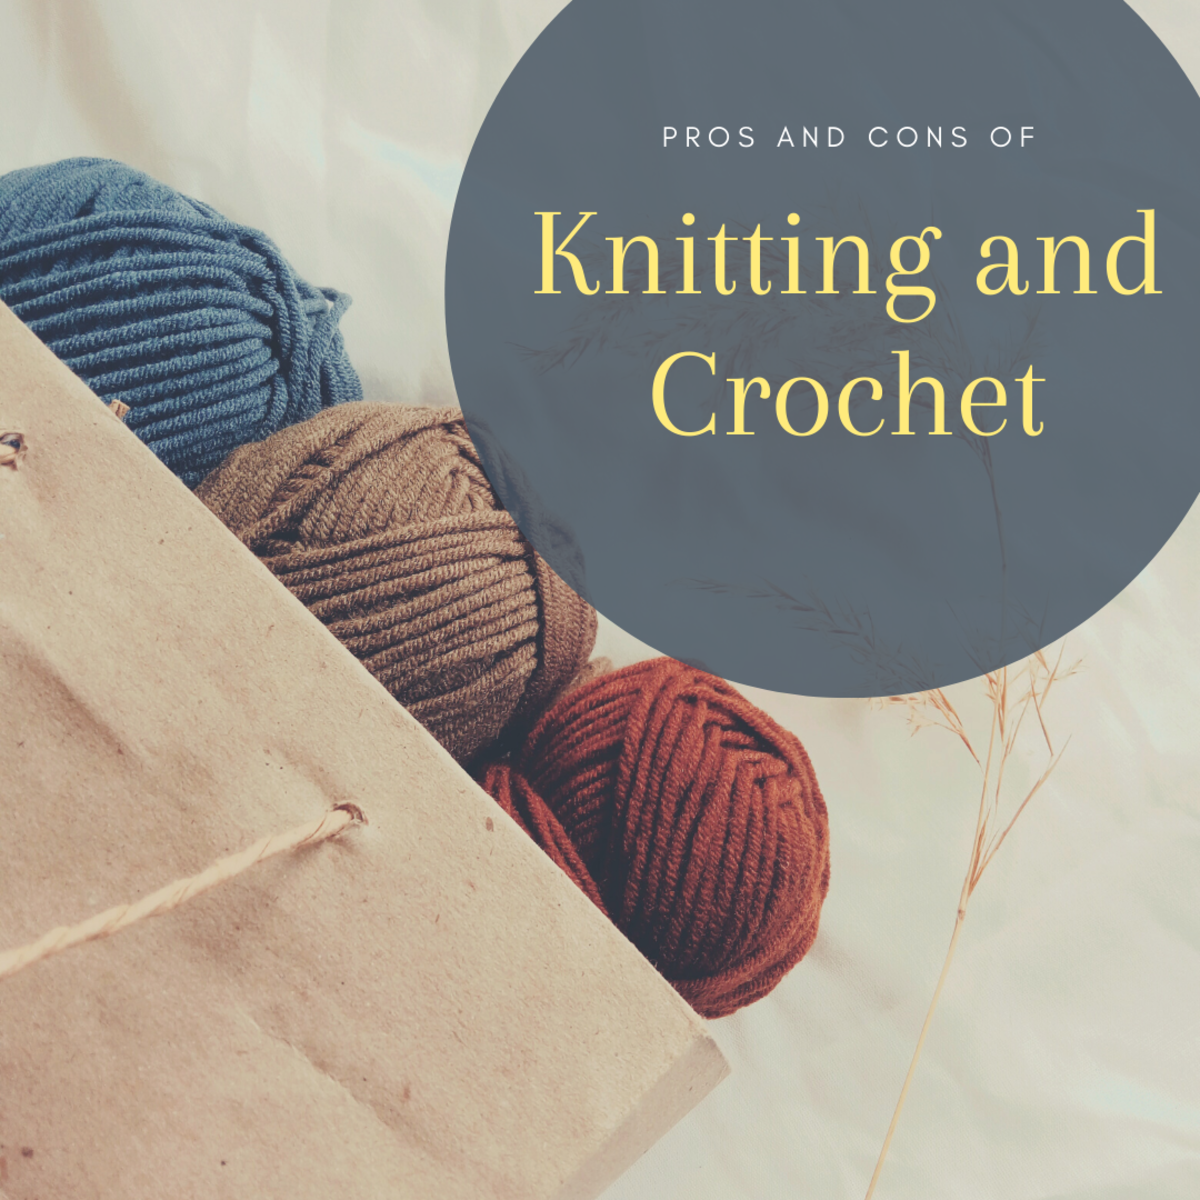 Knitting and crochet are unique crafts that each have their pros and cons.